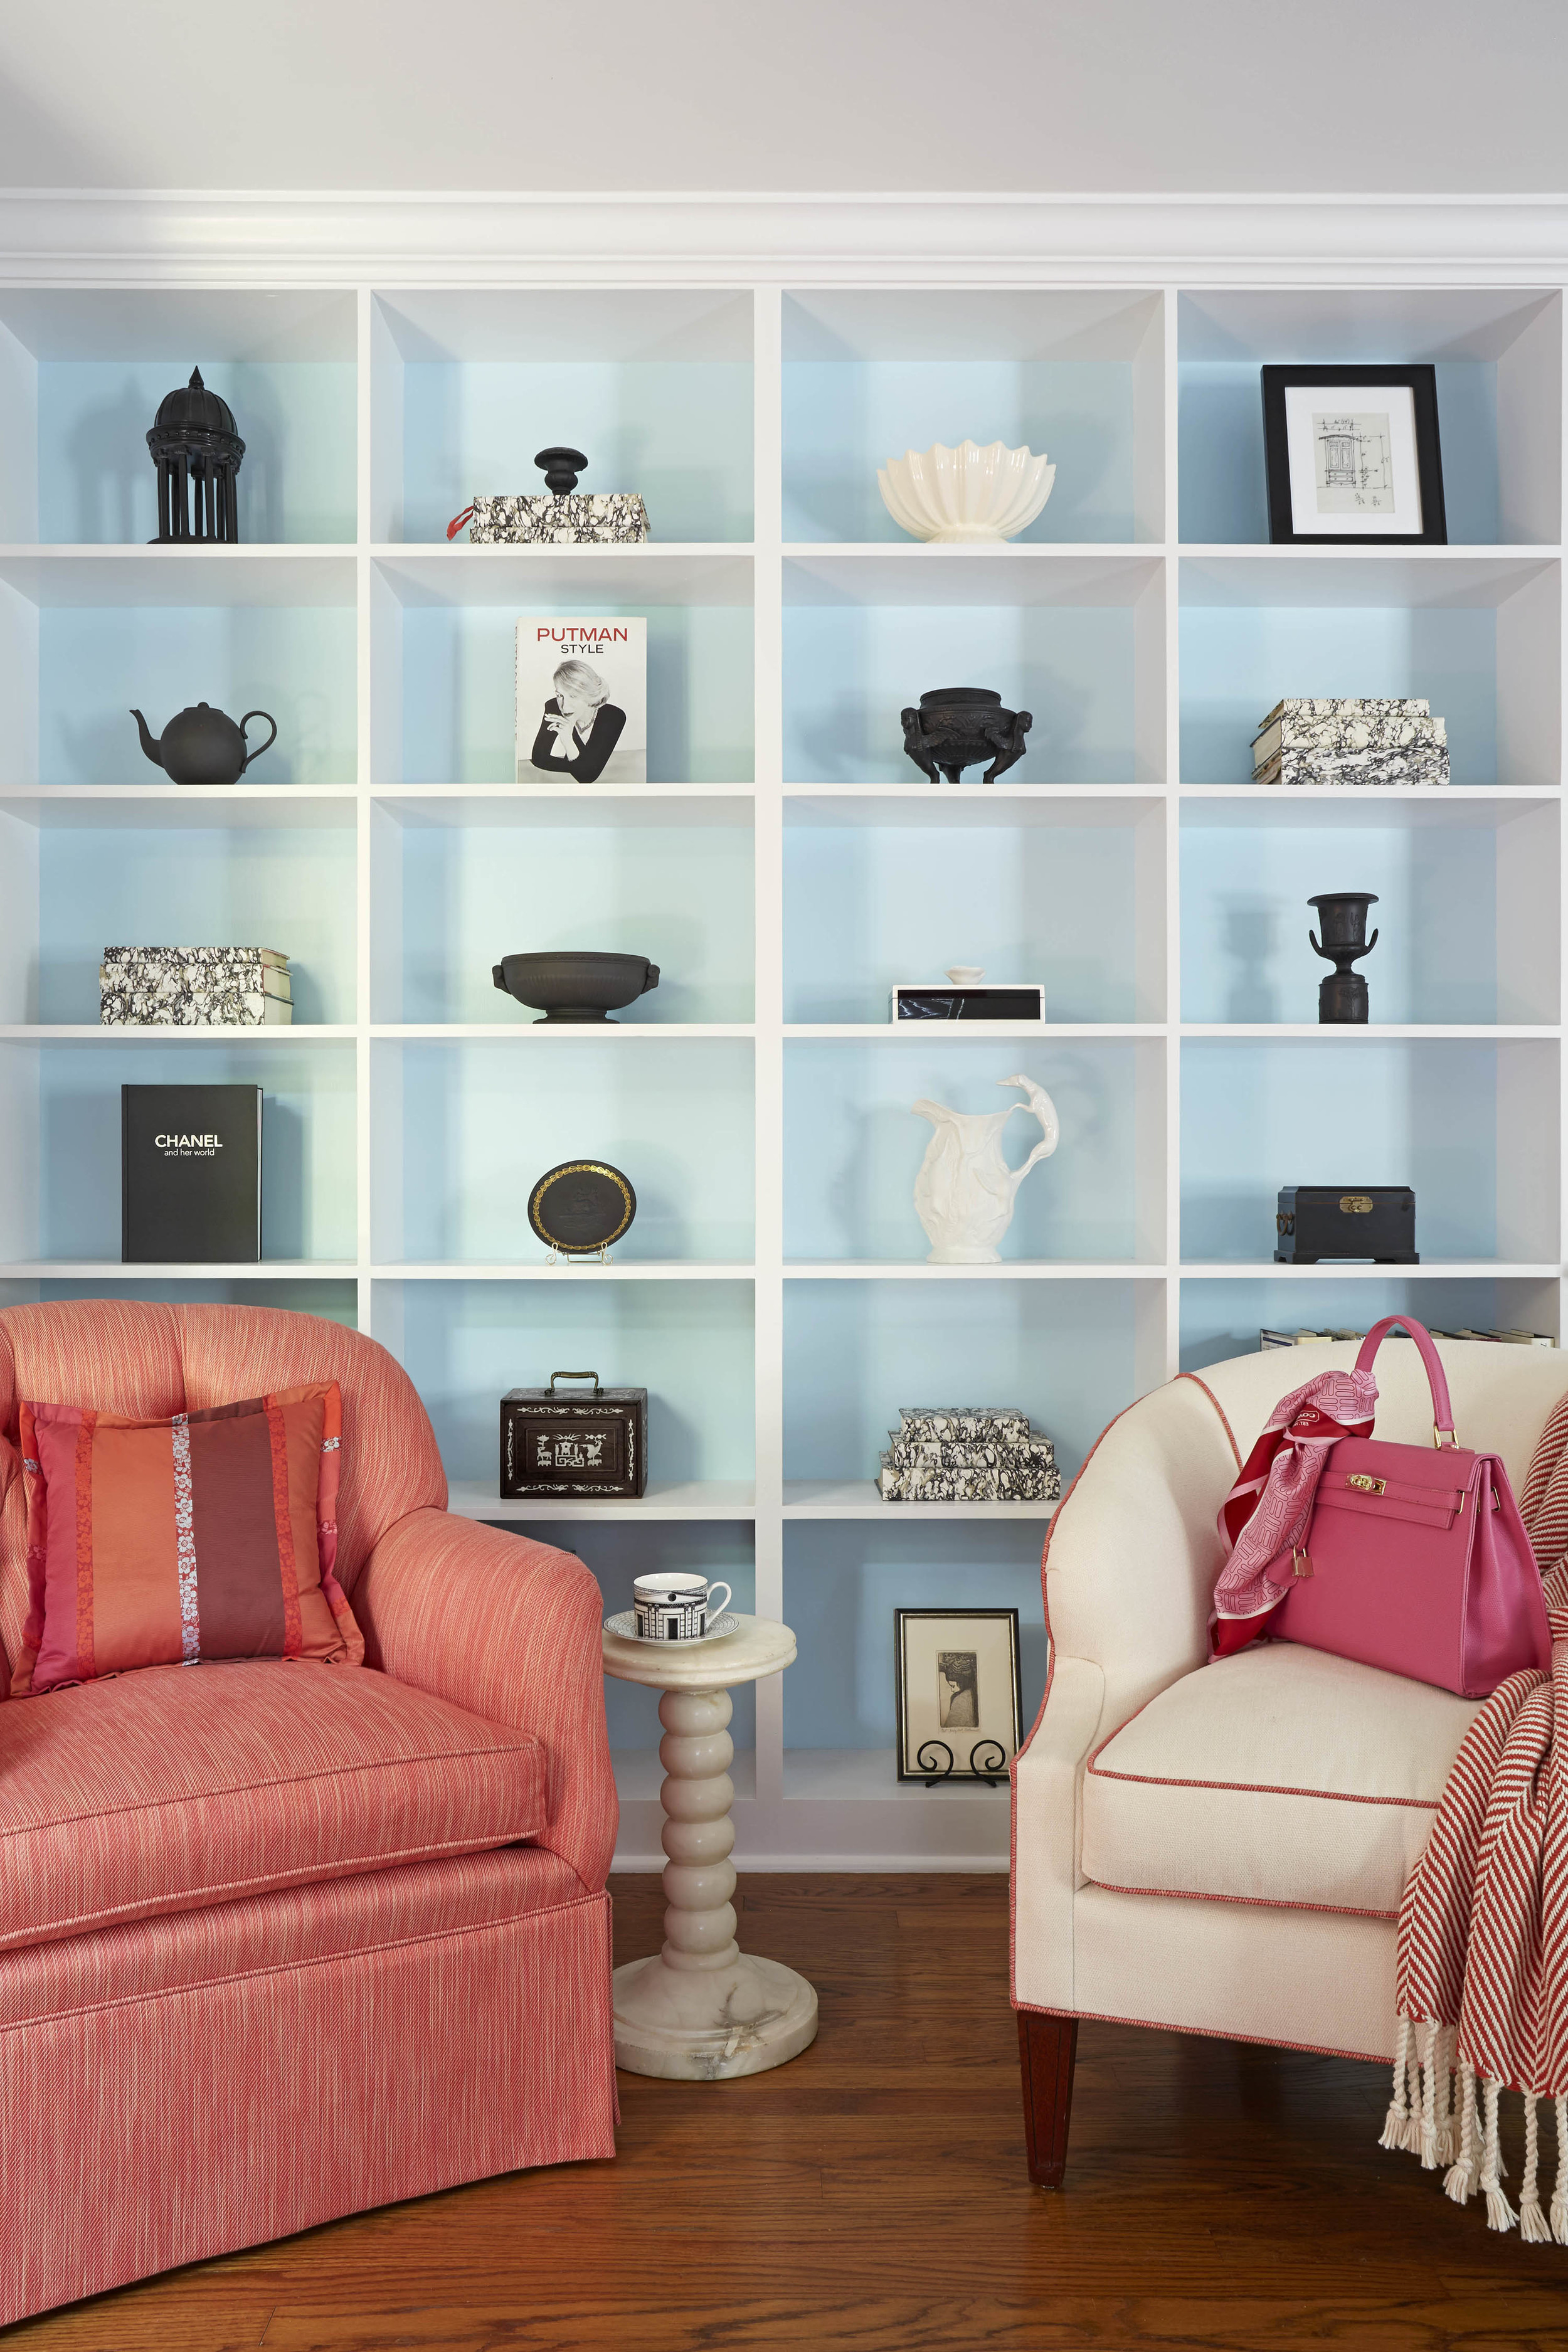 All the furniture used in this room was already in the space but was reimagined in fresh new fabrics. I loved the more sparse and edited arrangement within the bookcase. The background is Benjamin Moore Flower Blue, a vivid Robin's egg color that makes everyone feel a moment of joy. Colors can be very powerful. The hot pink Hermes Kelly bag was one of the inspirations for the room.